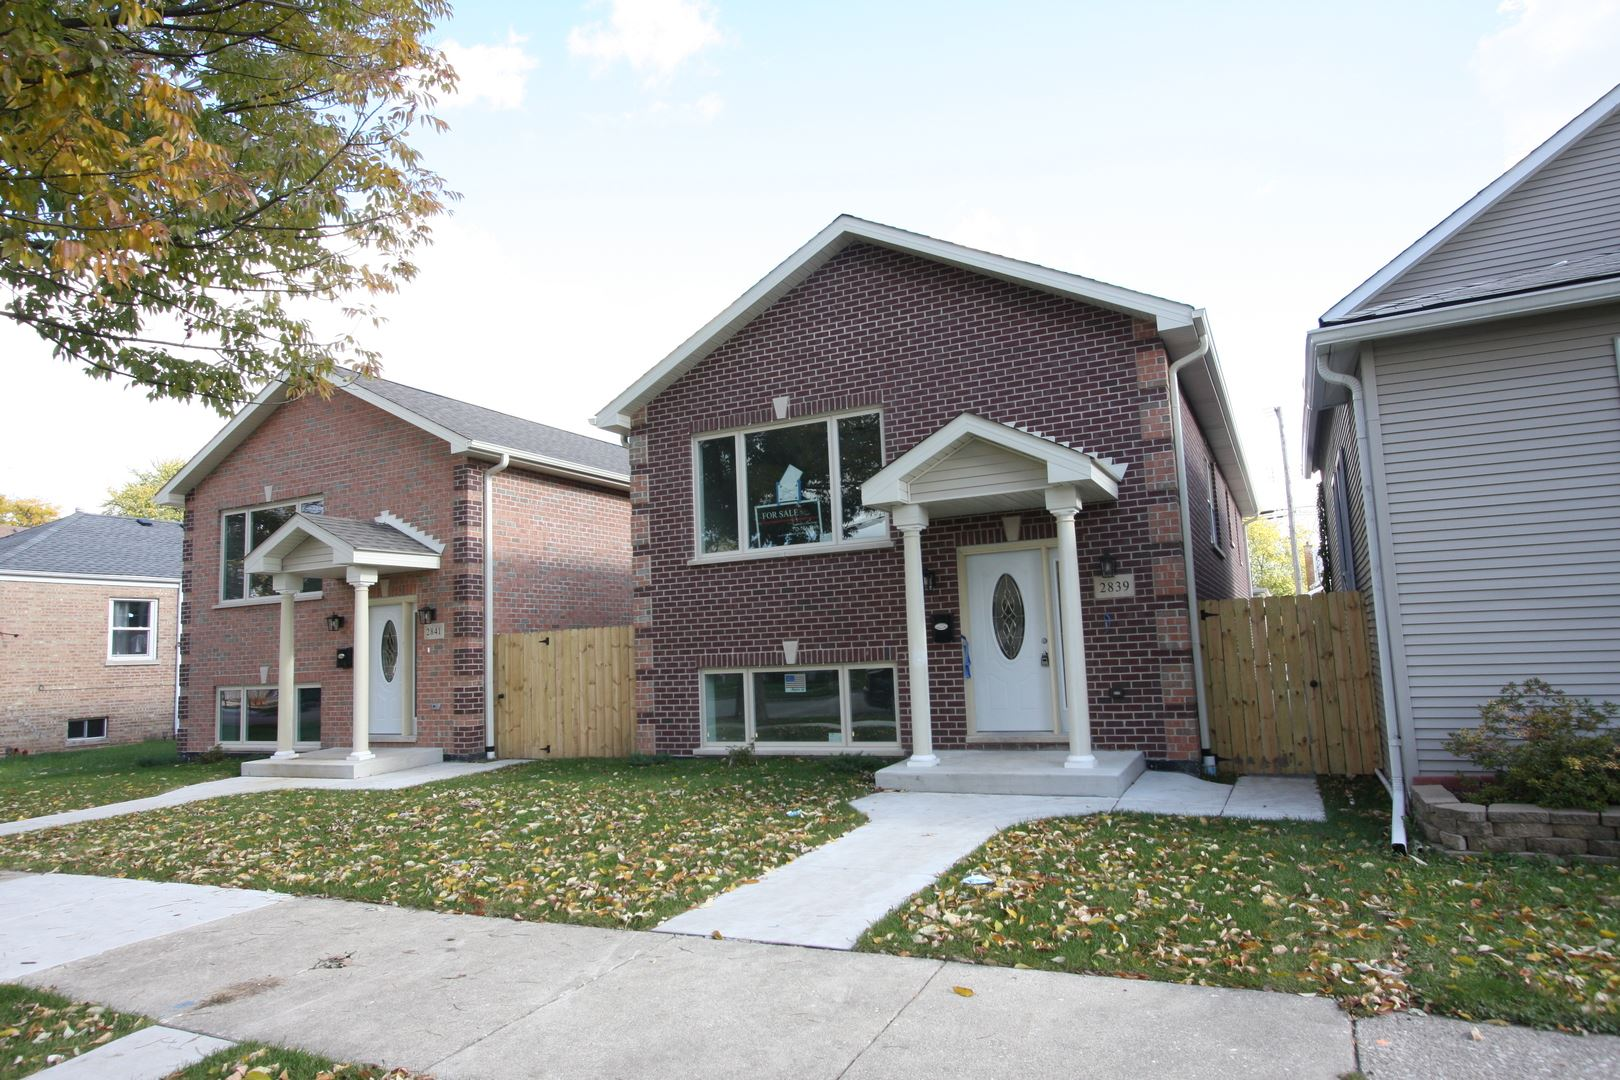 2839 N RUTHERFORD Street, Chicago, IL 60634 - #: 11157805